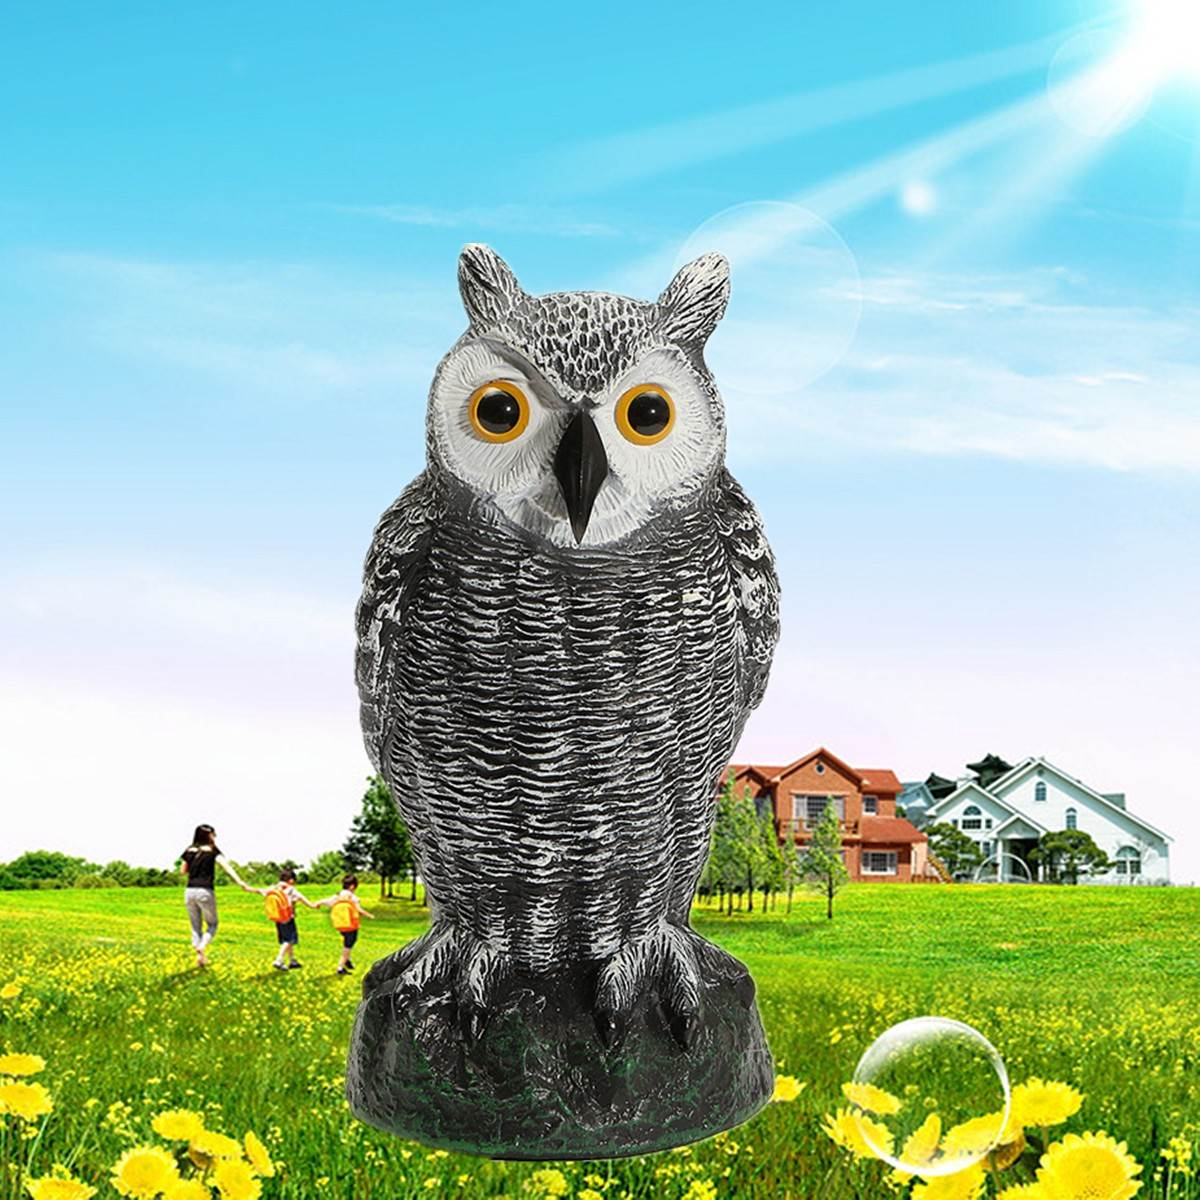 Animal ornaments - Hunting Decoys Plastic Owl Outdoor Garden Decoration Ornaments For Hunting Decoys Scarer Scarecrow